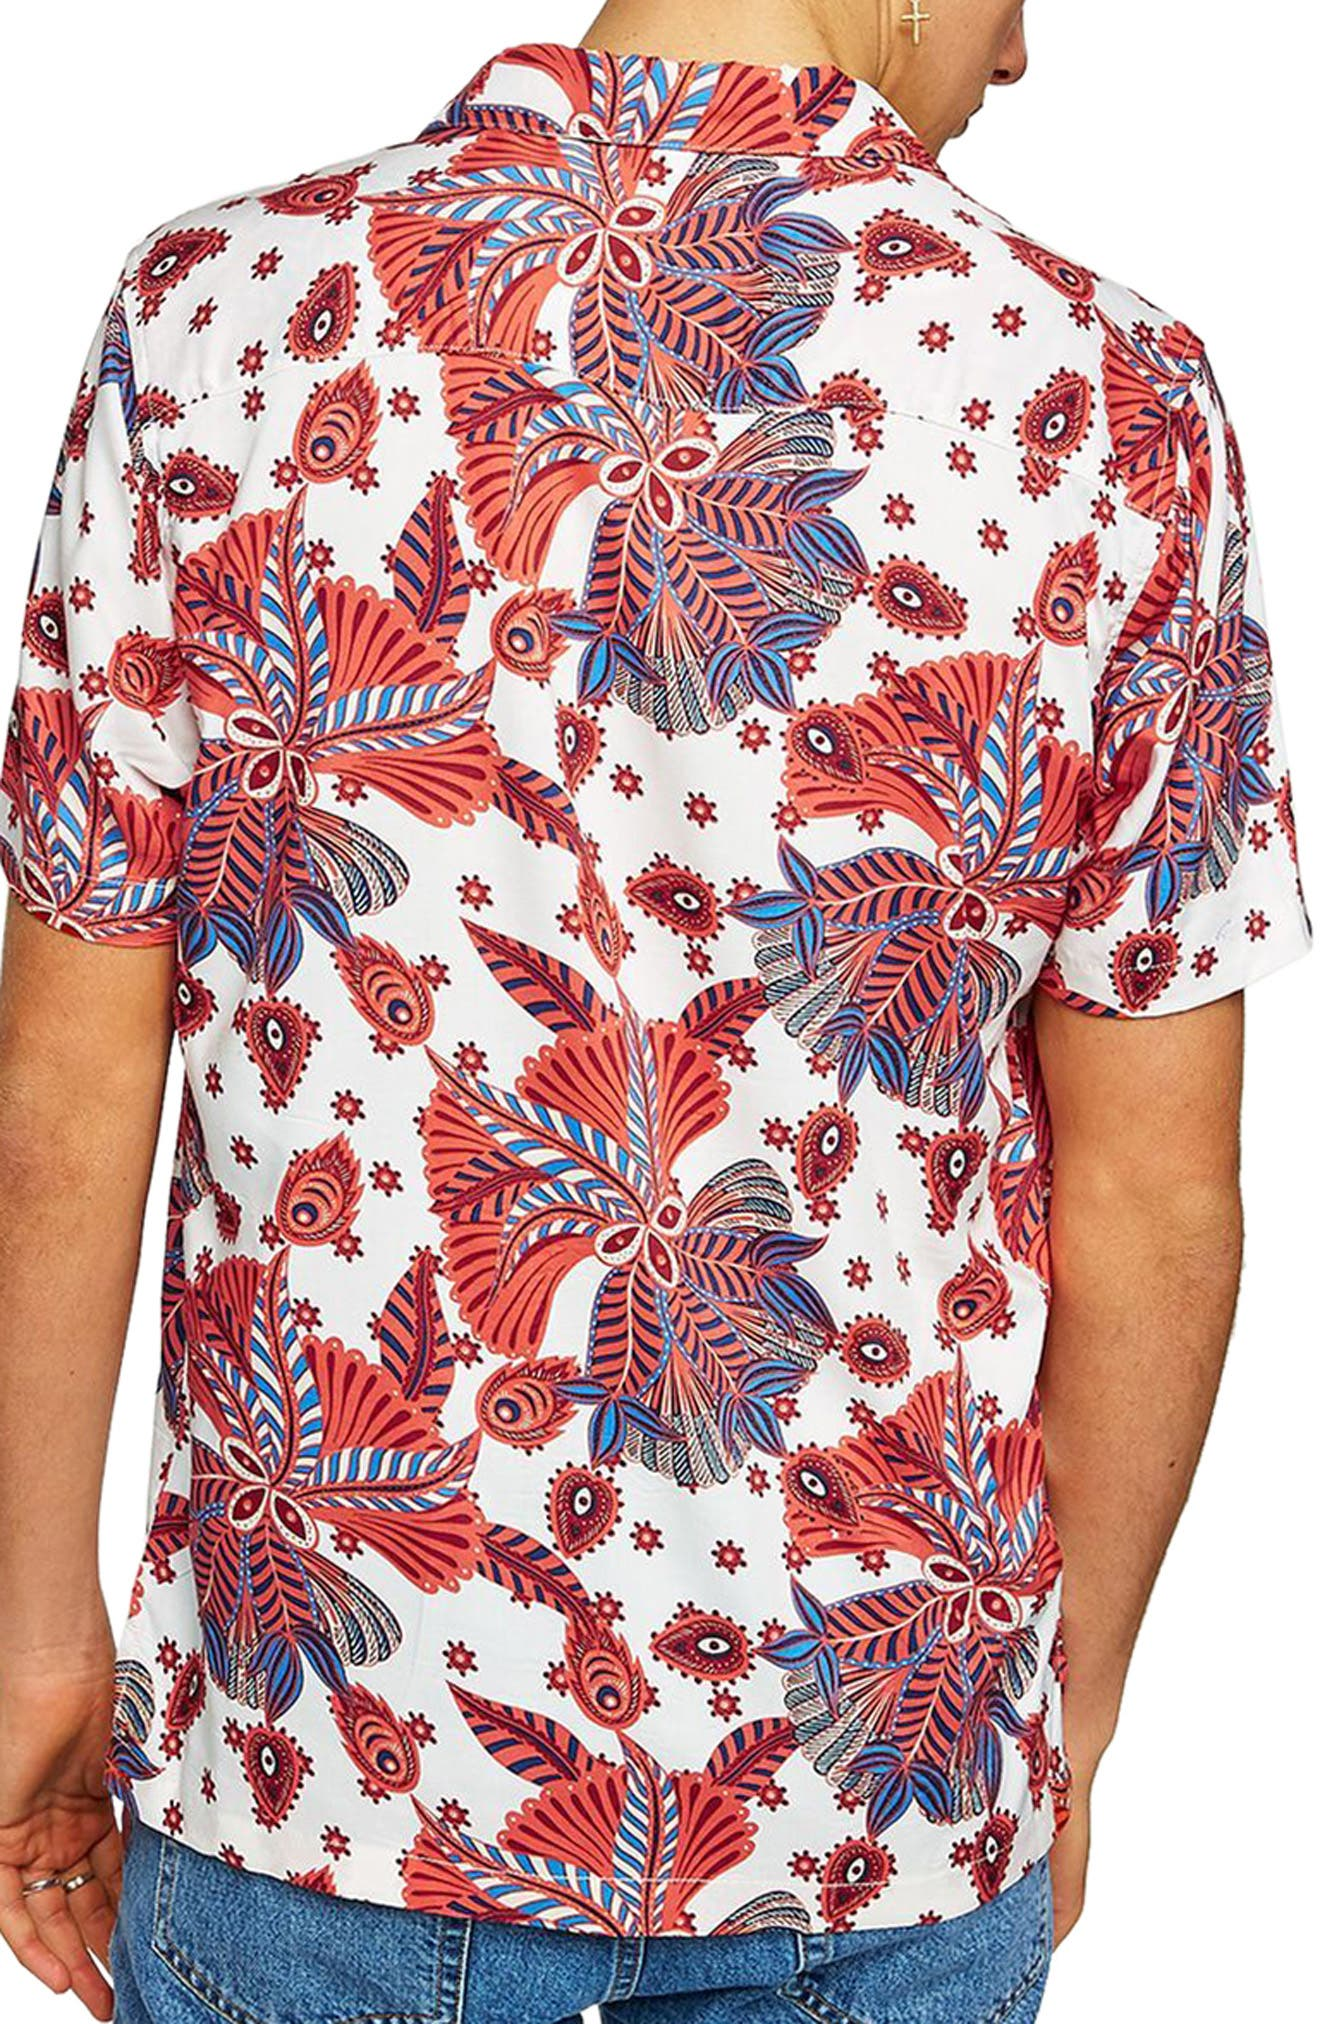 Multi Print Shirt,                             Alternate thumbnail 2, color,                             100